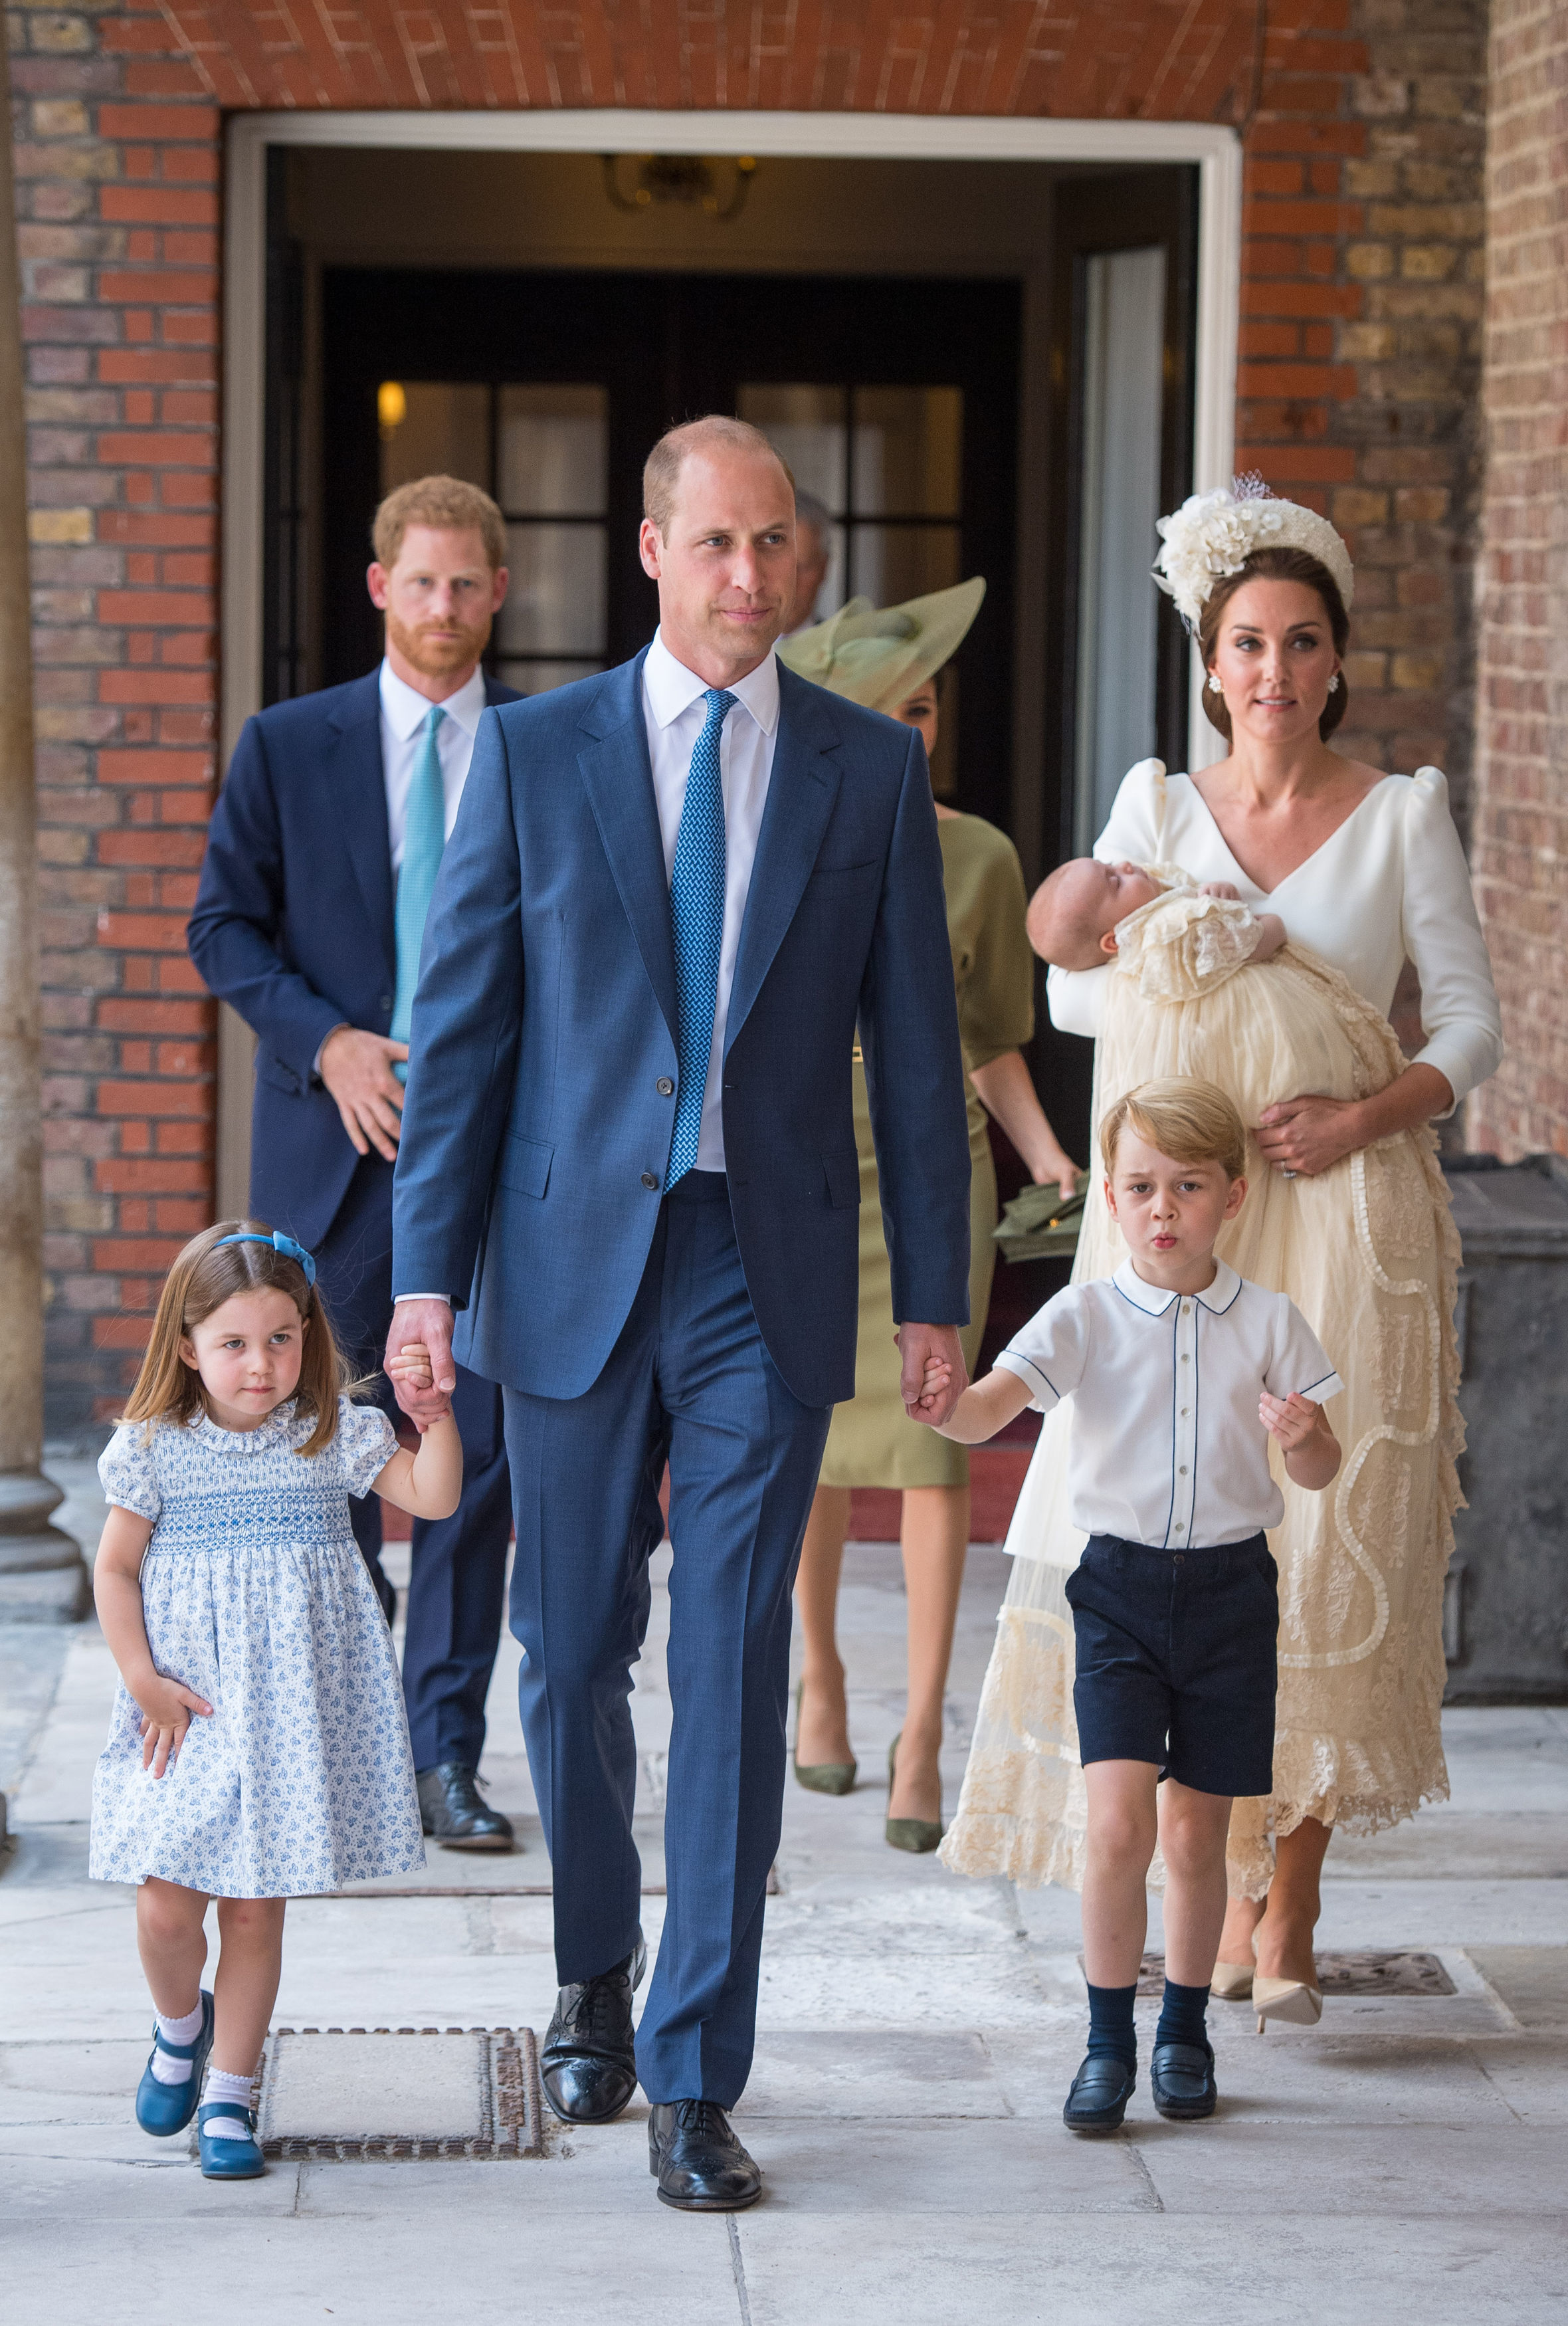 Princess Charlotte and Prince George hold the hands of their father, the Duke of Cambridge, as they arrive at the Chapel Royal, St James's Palace, London for the christening of their brother, Prince Louis, who is being carried by their mother, the Duchess of Cambridge